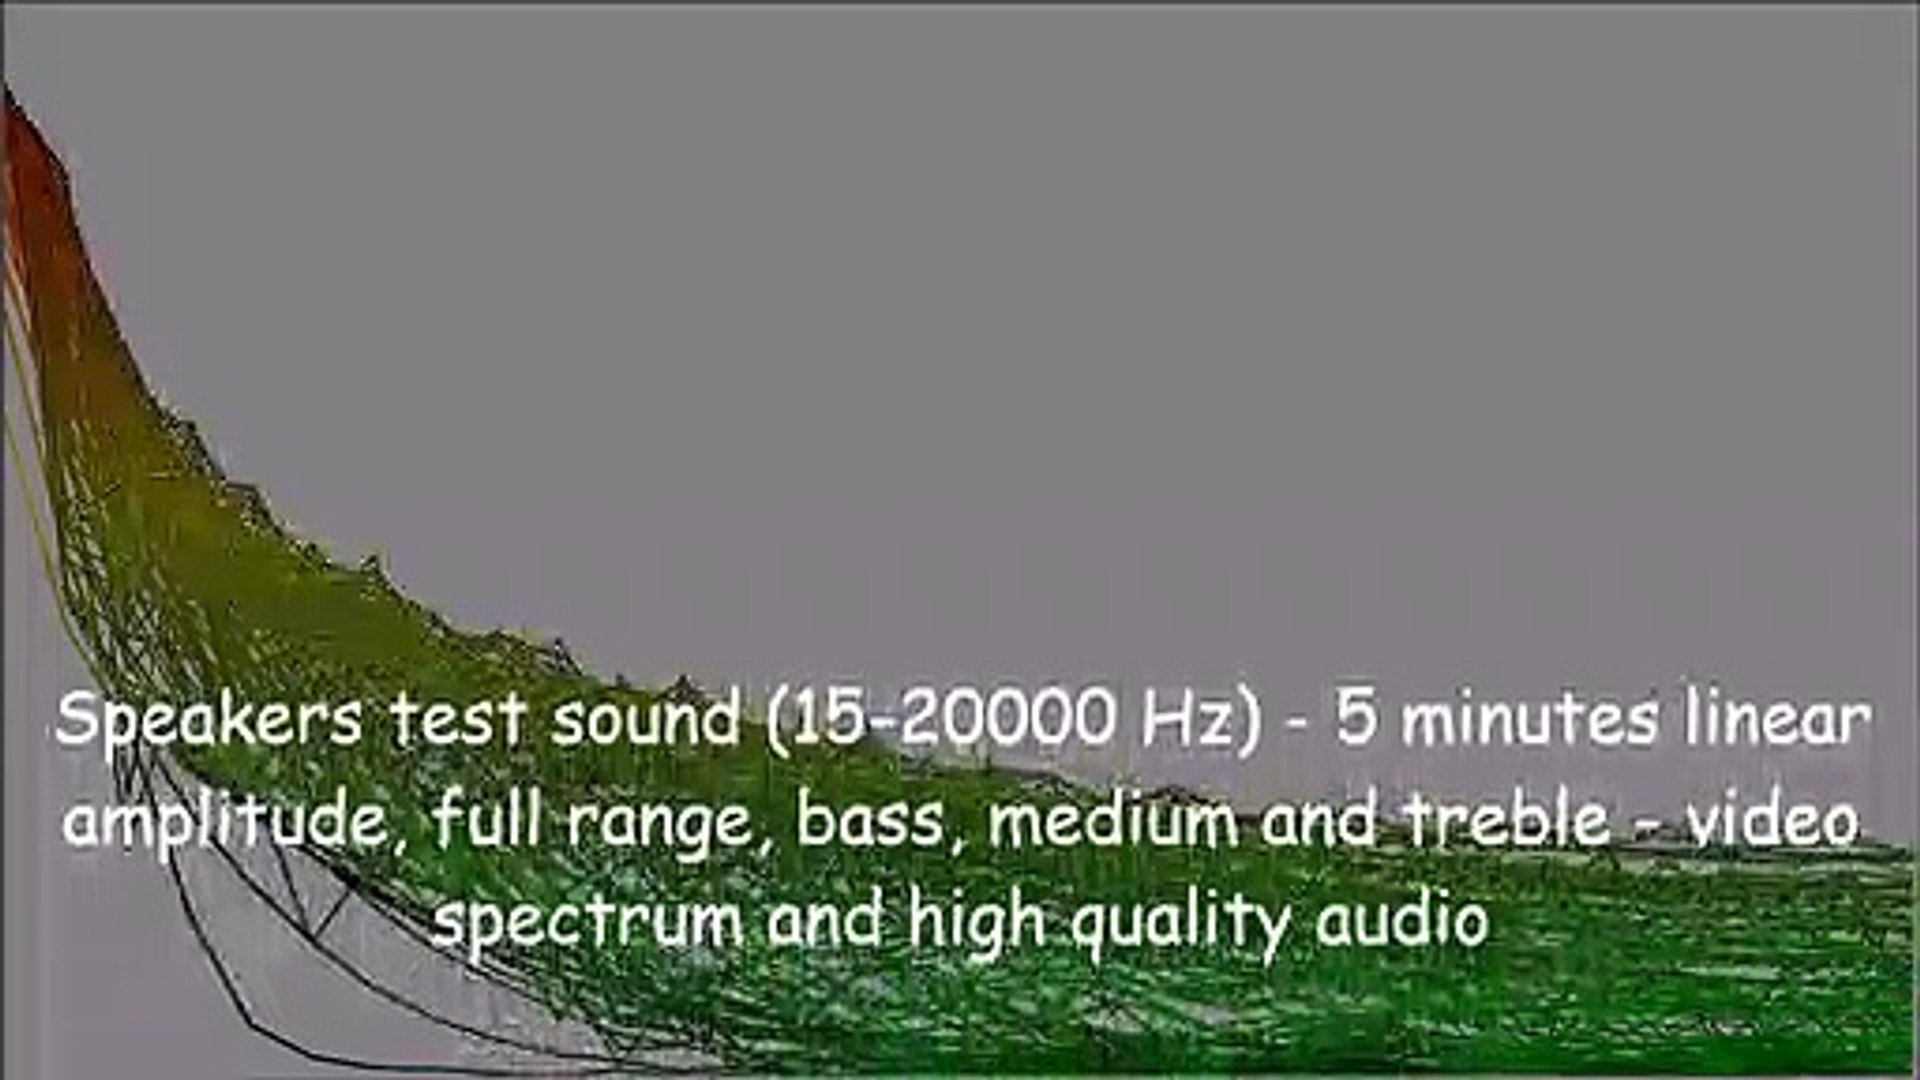 Speakers test sound (15-20000 Hz) - 5 minutes linear amplitude, full range,  bass, medium and treble - video spectrum and high quality audio